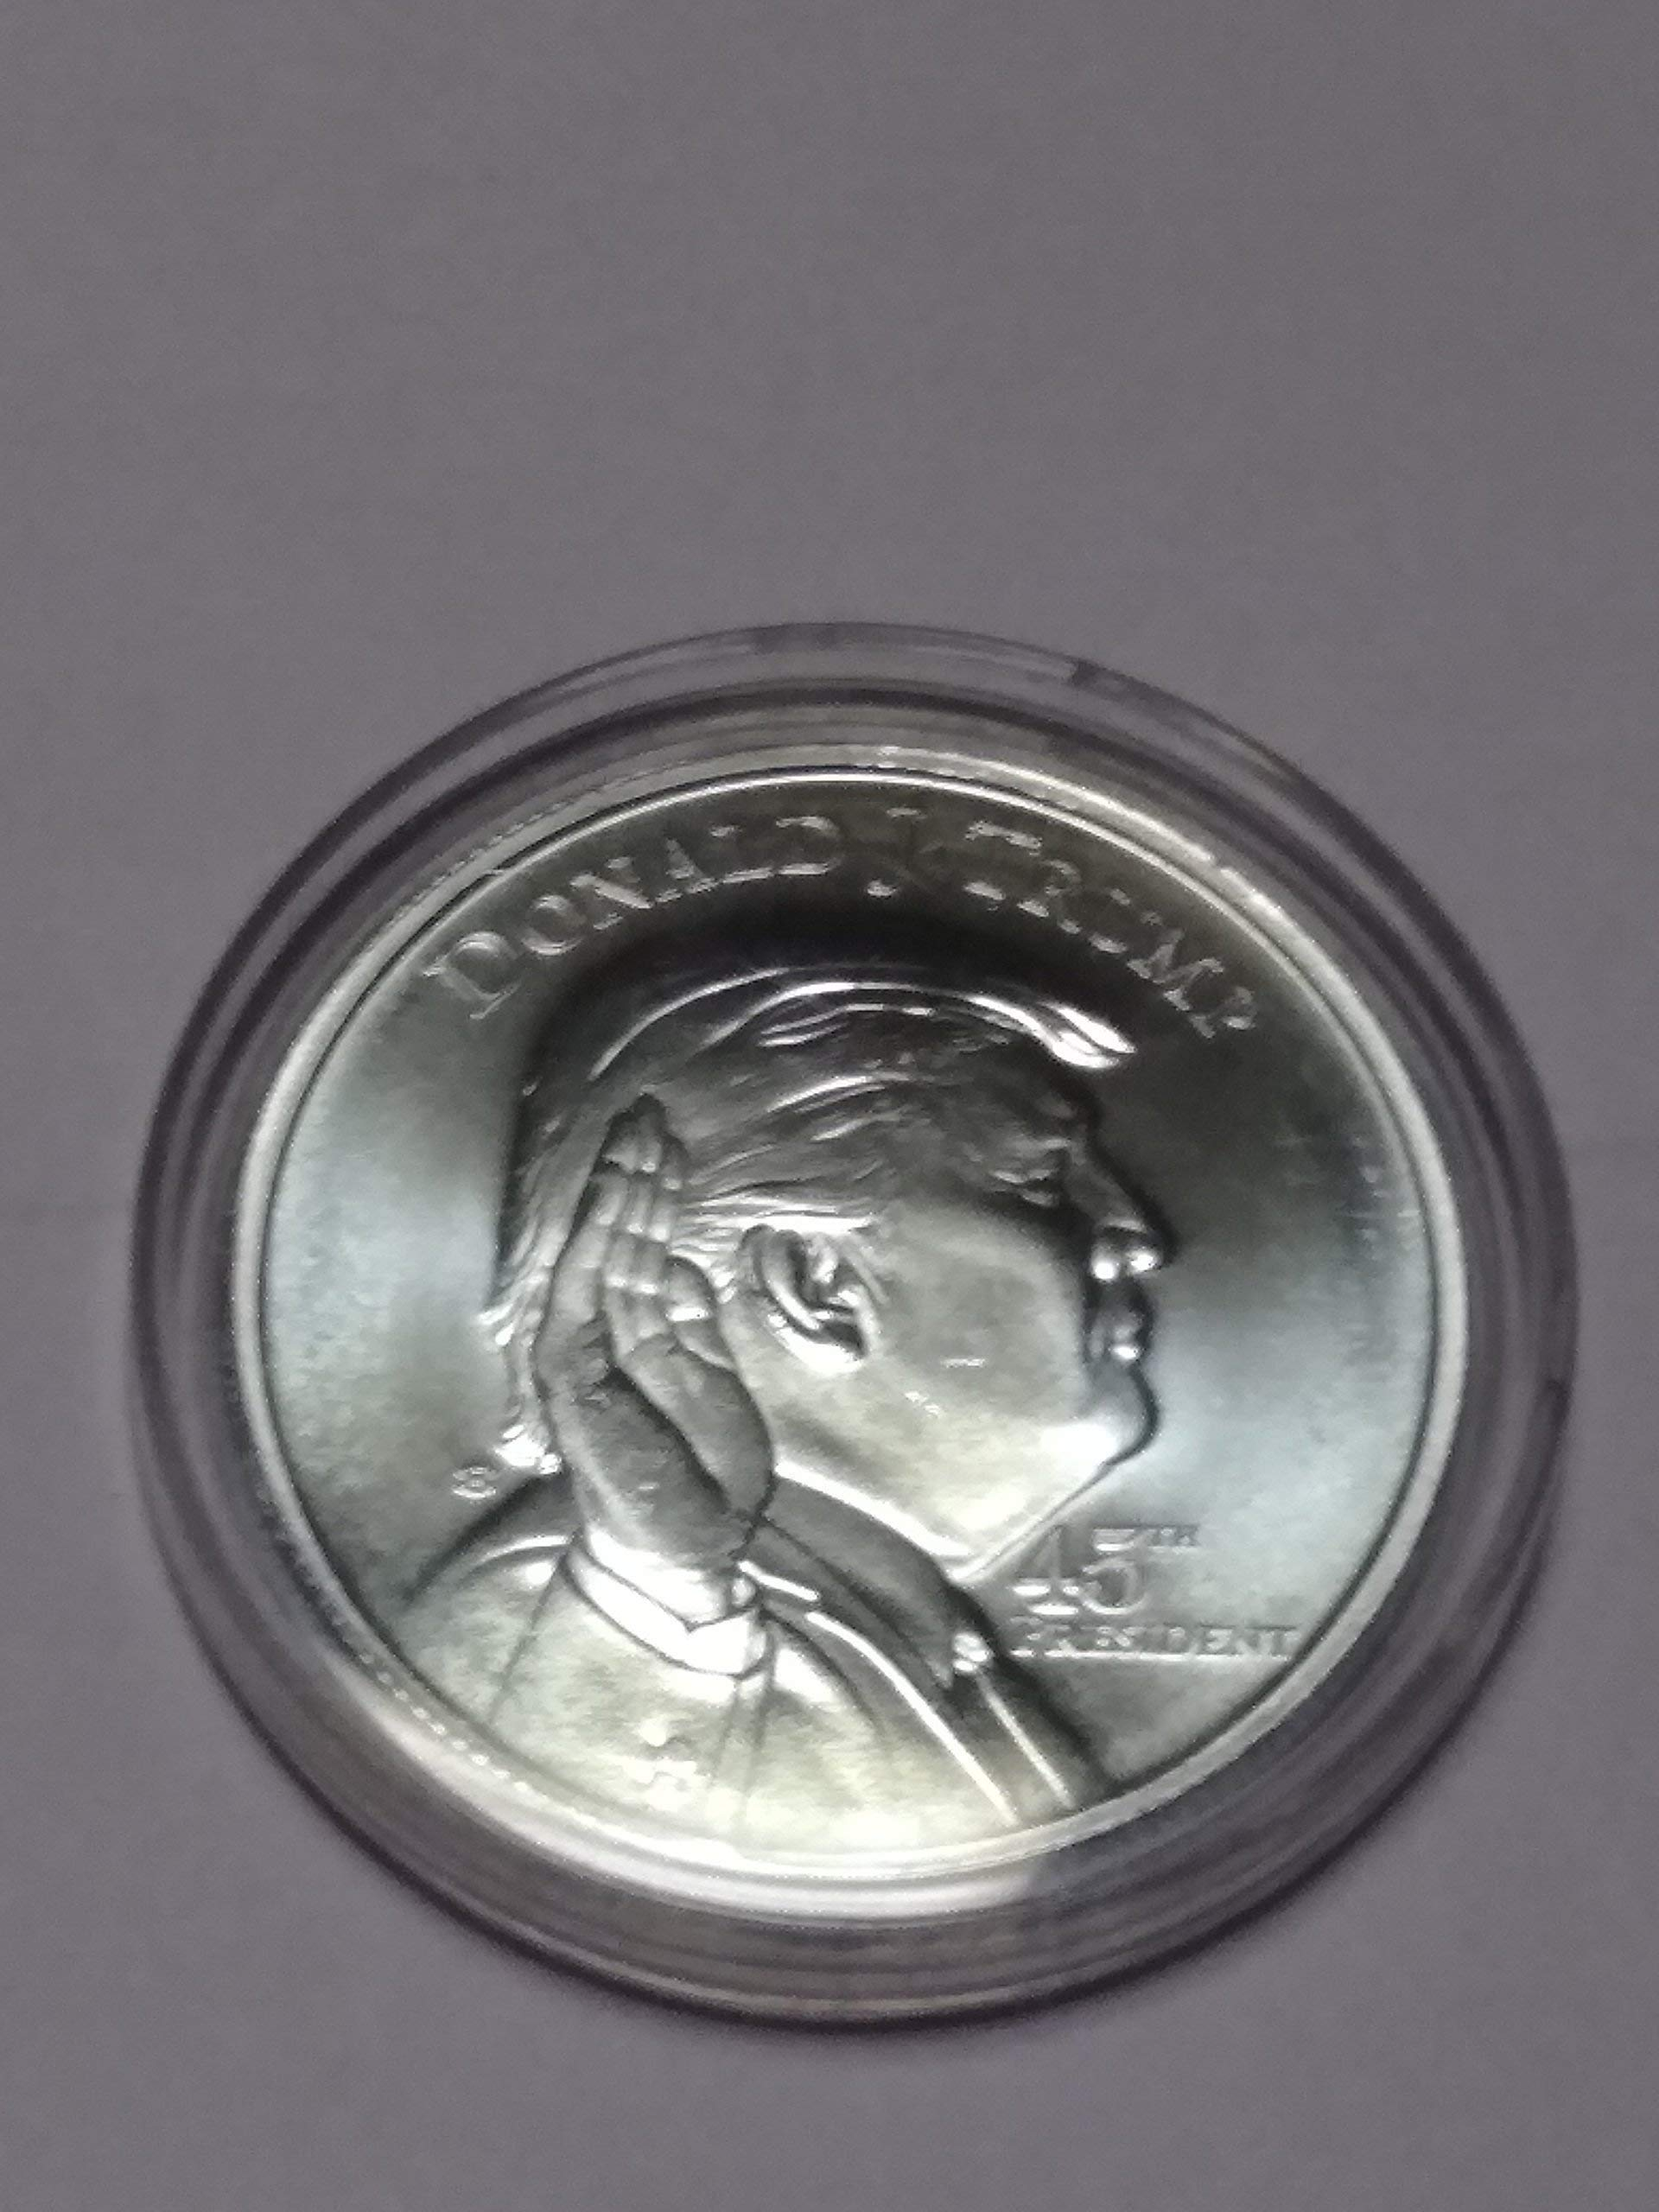 Uncirculated Donald Trump 45th Presidential, White House Private Mintage, Limited Edition Mint. 1 Troy Oz .999 Fine Silver Round in Plastic Protection case.